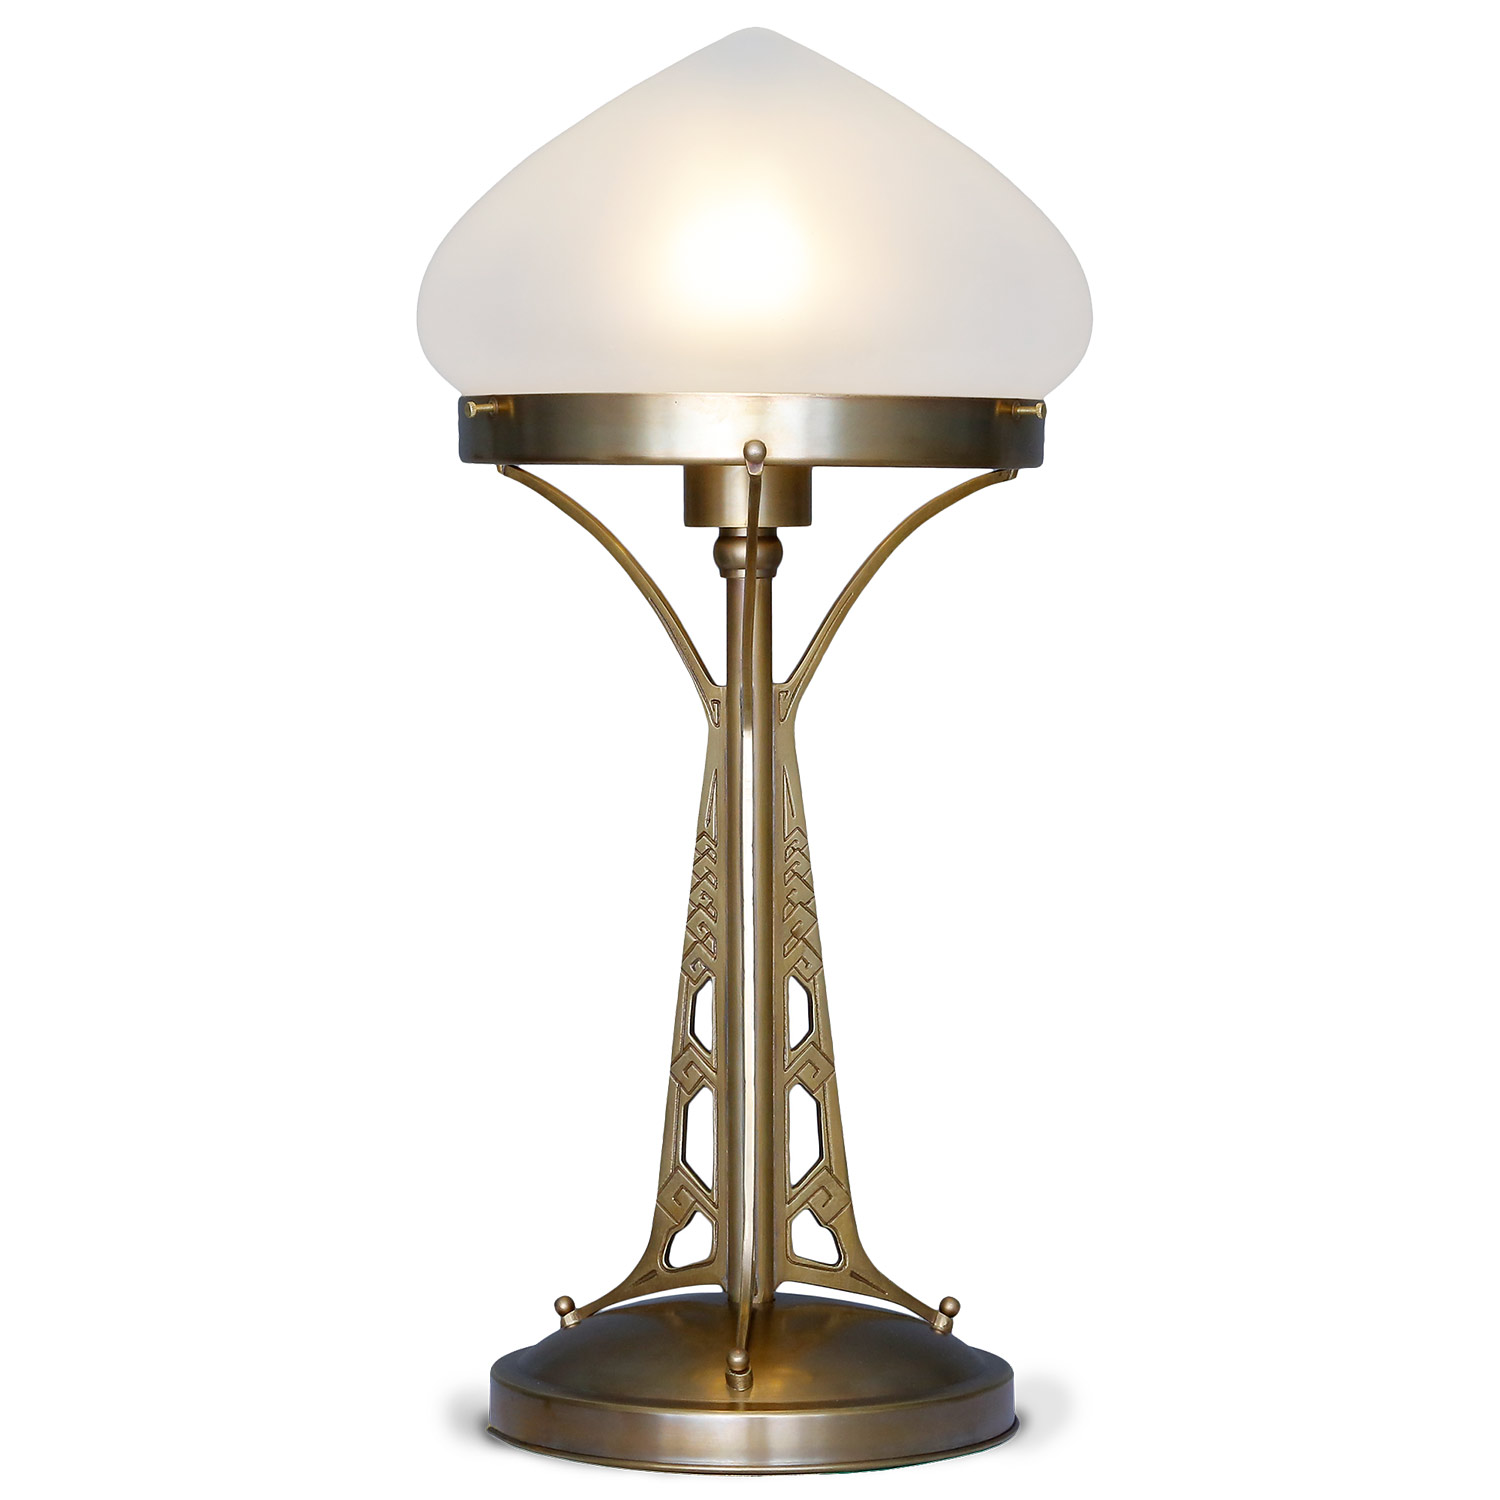 Magnificent Art Nouveau Table Lamp In Mushroom Shape Casa Lumi